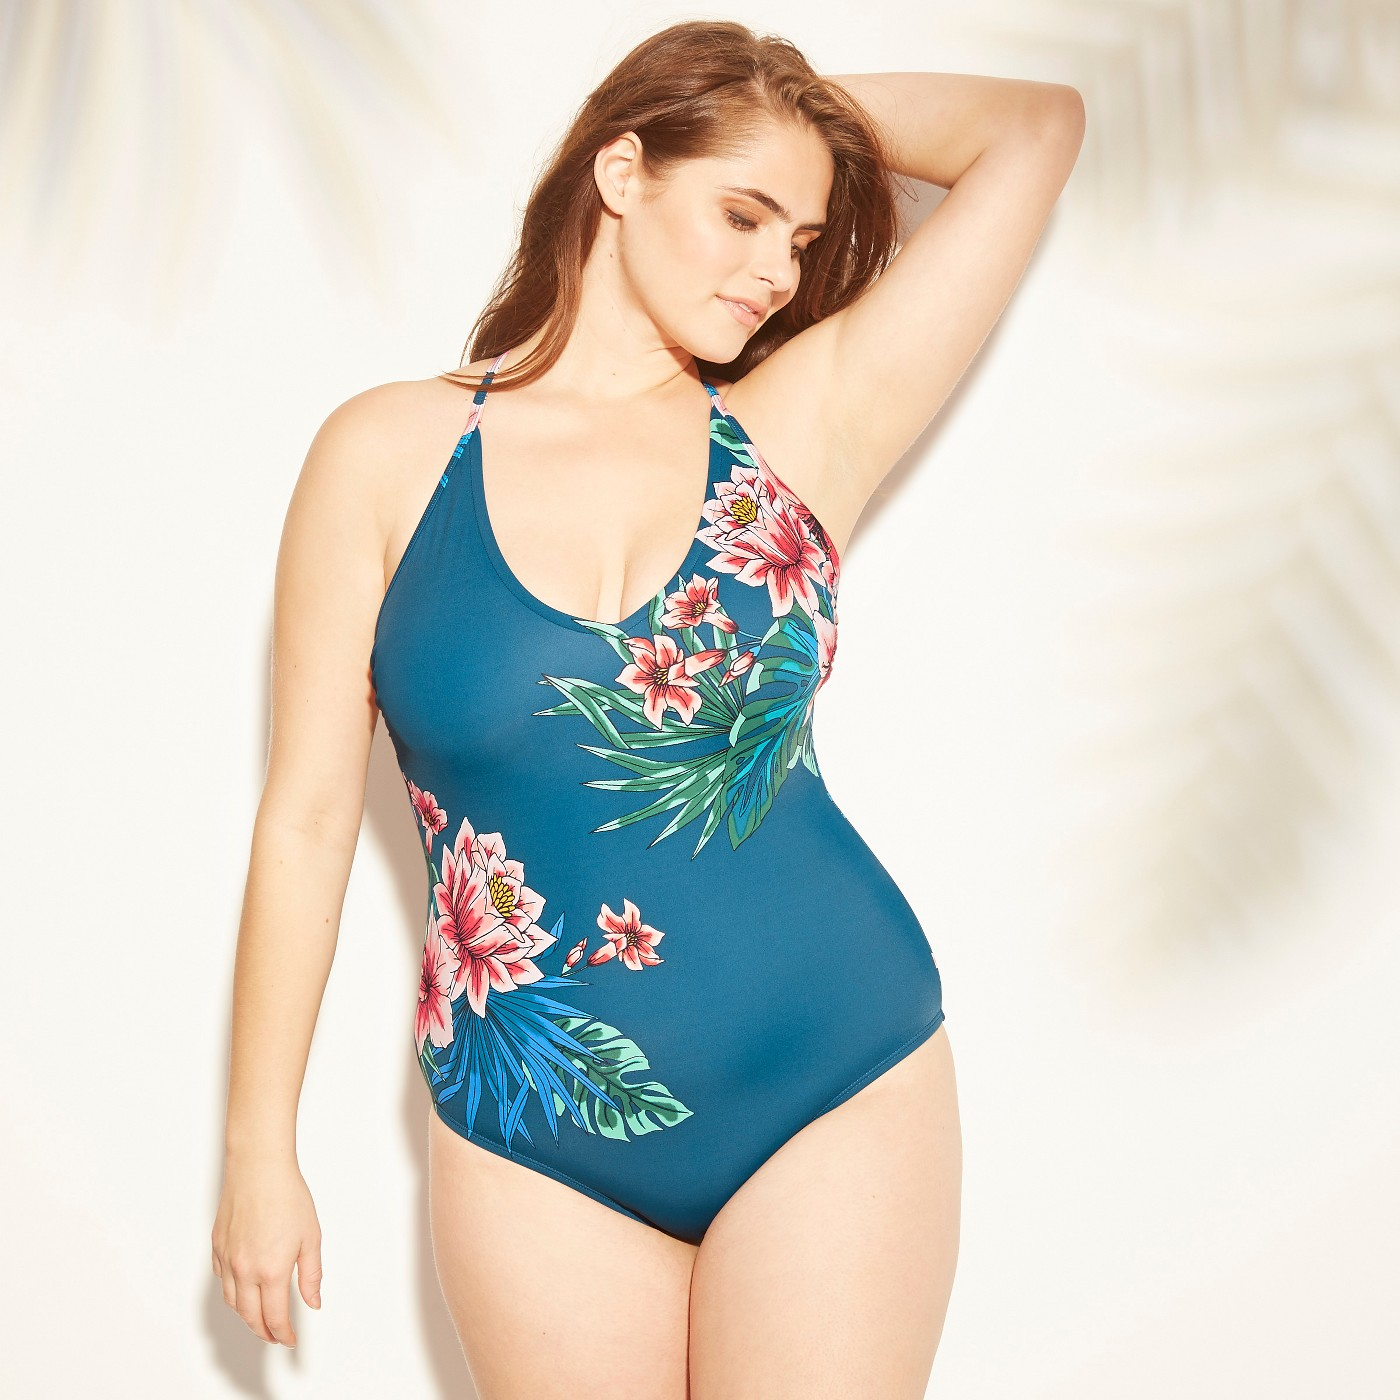 9712dc12c1 Target's Size-Inclusive Swimsuit Brand Is the Body Positivity We ...